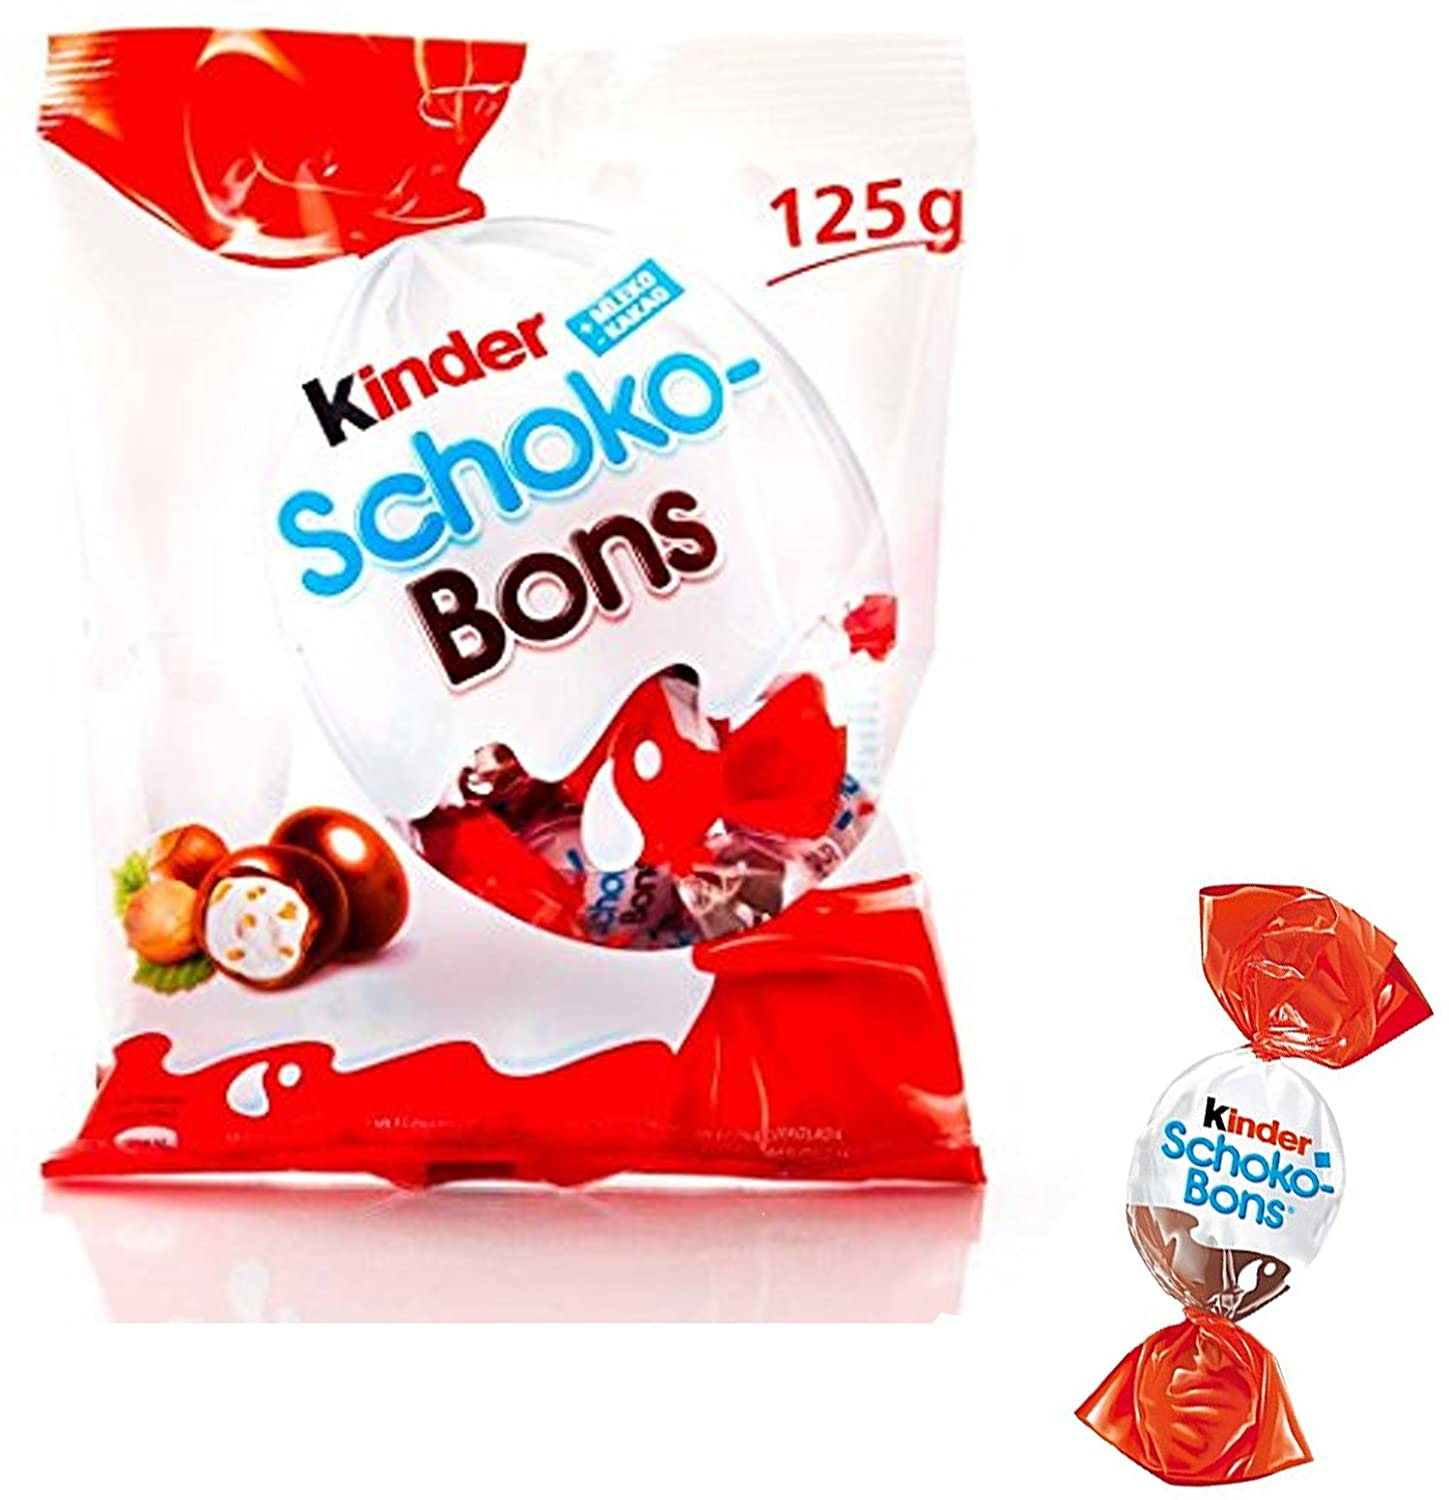 "kinder schoko bons 125gr (4.4 oz) ""Imported from Italy"""